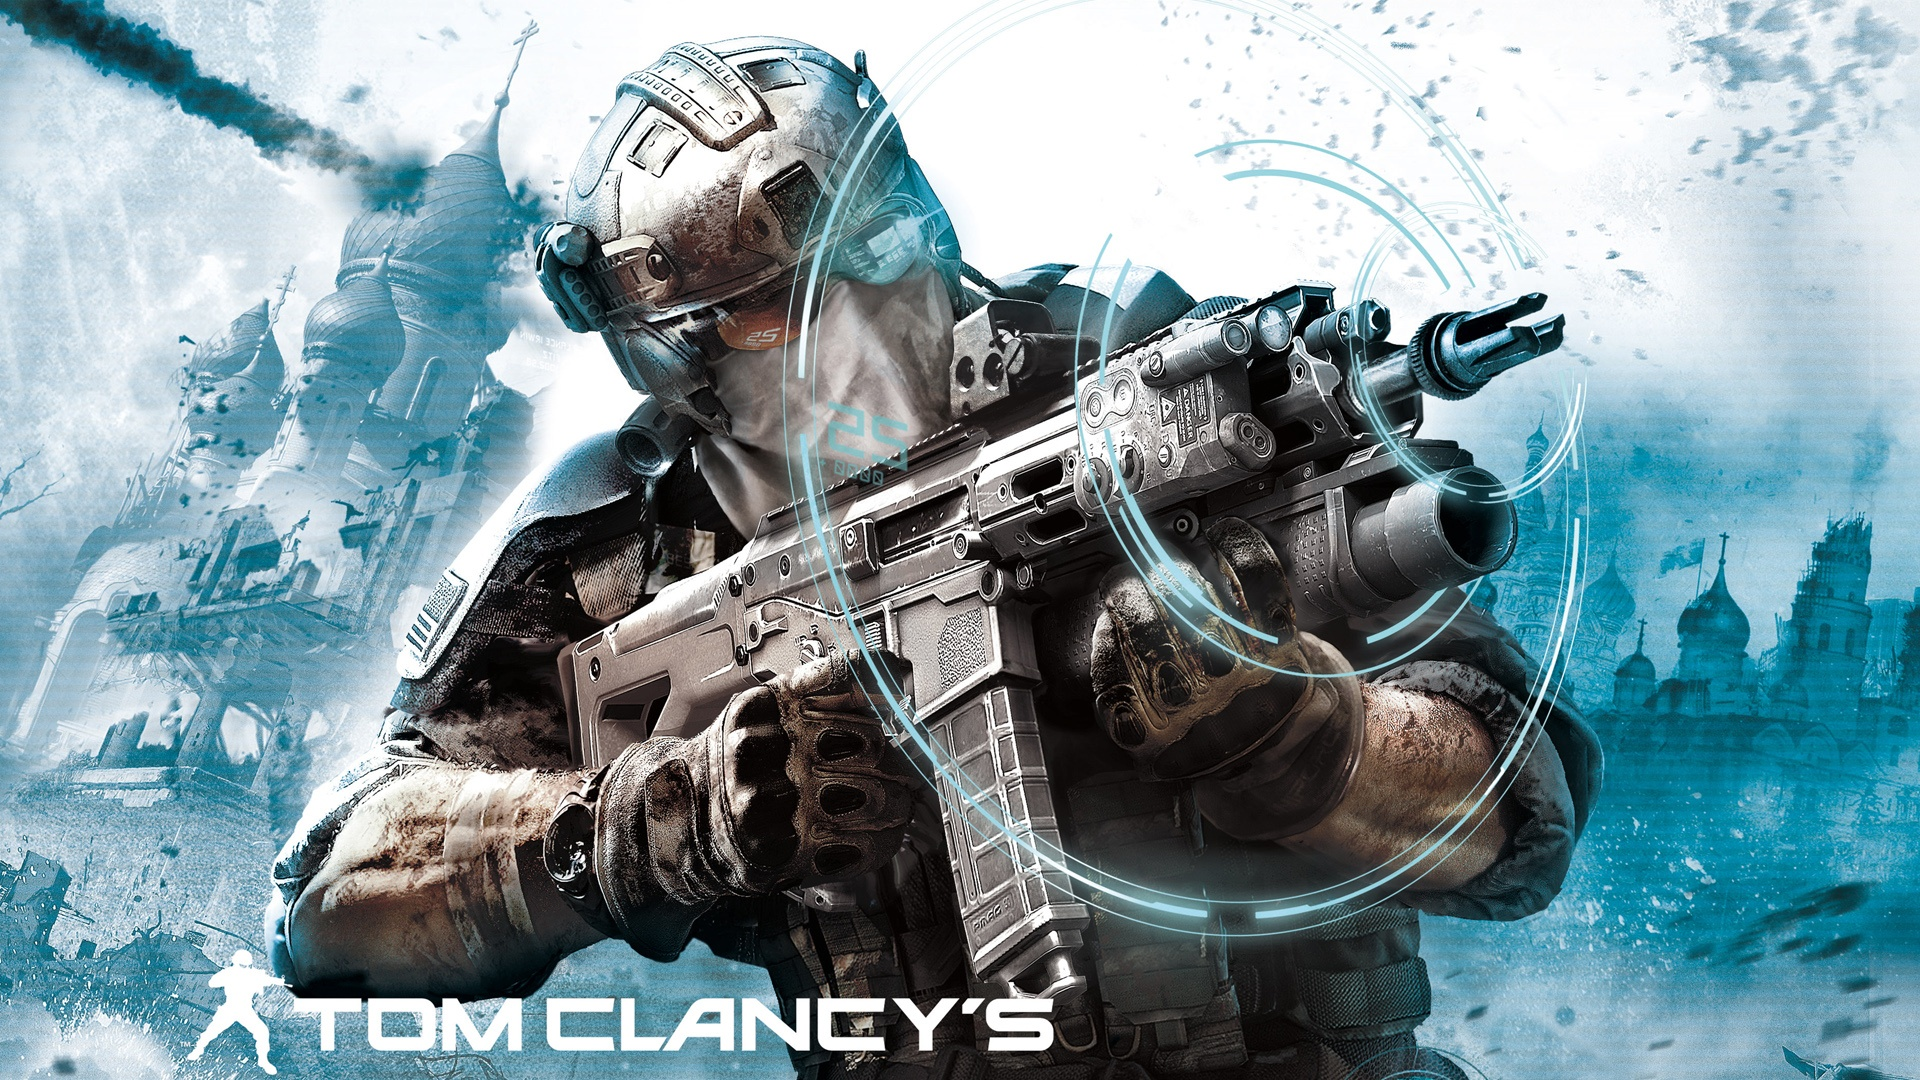 12 hd ghost recon future soldier wallpapers - stunning hd wallpapers